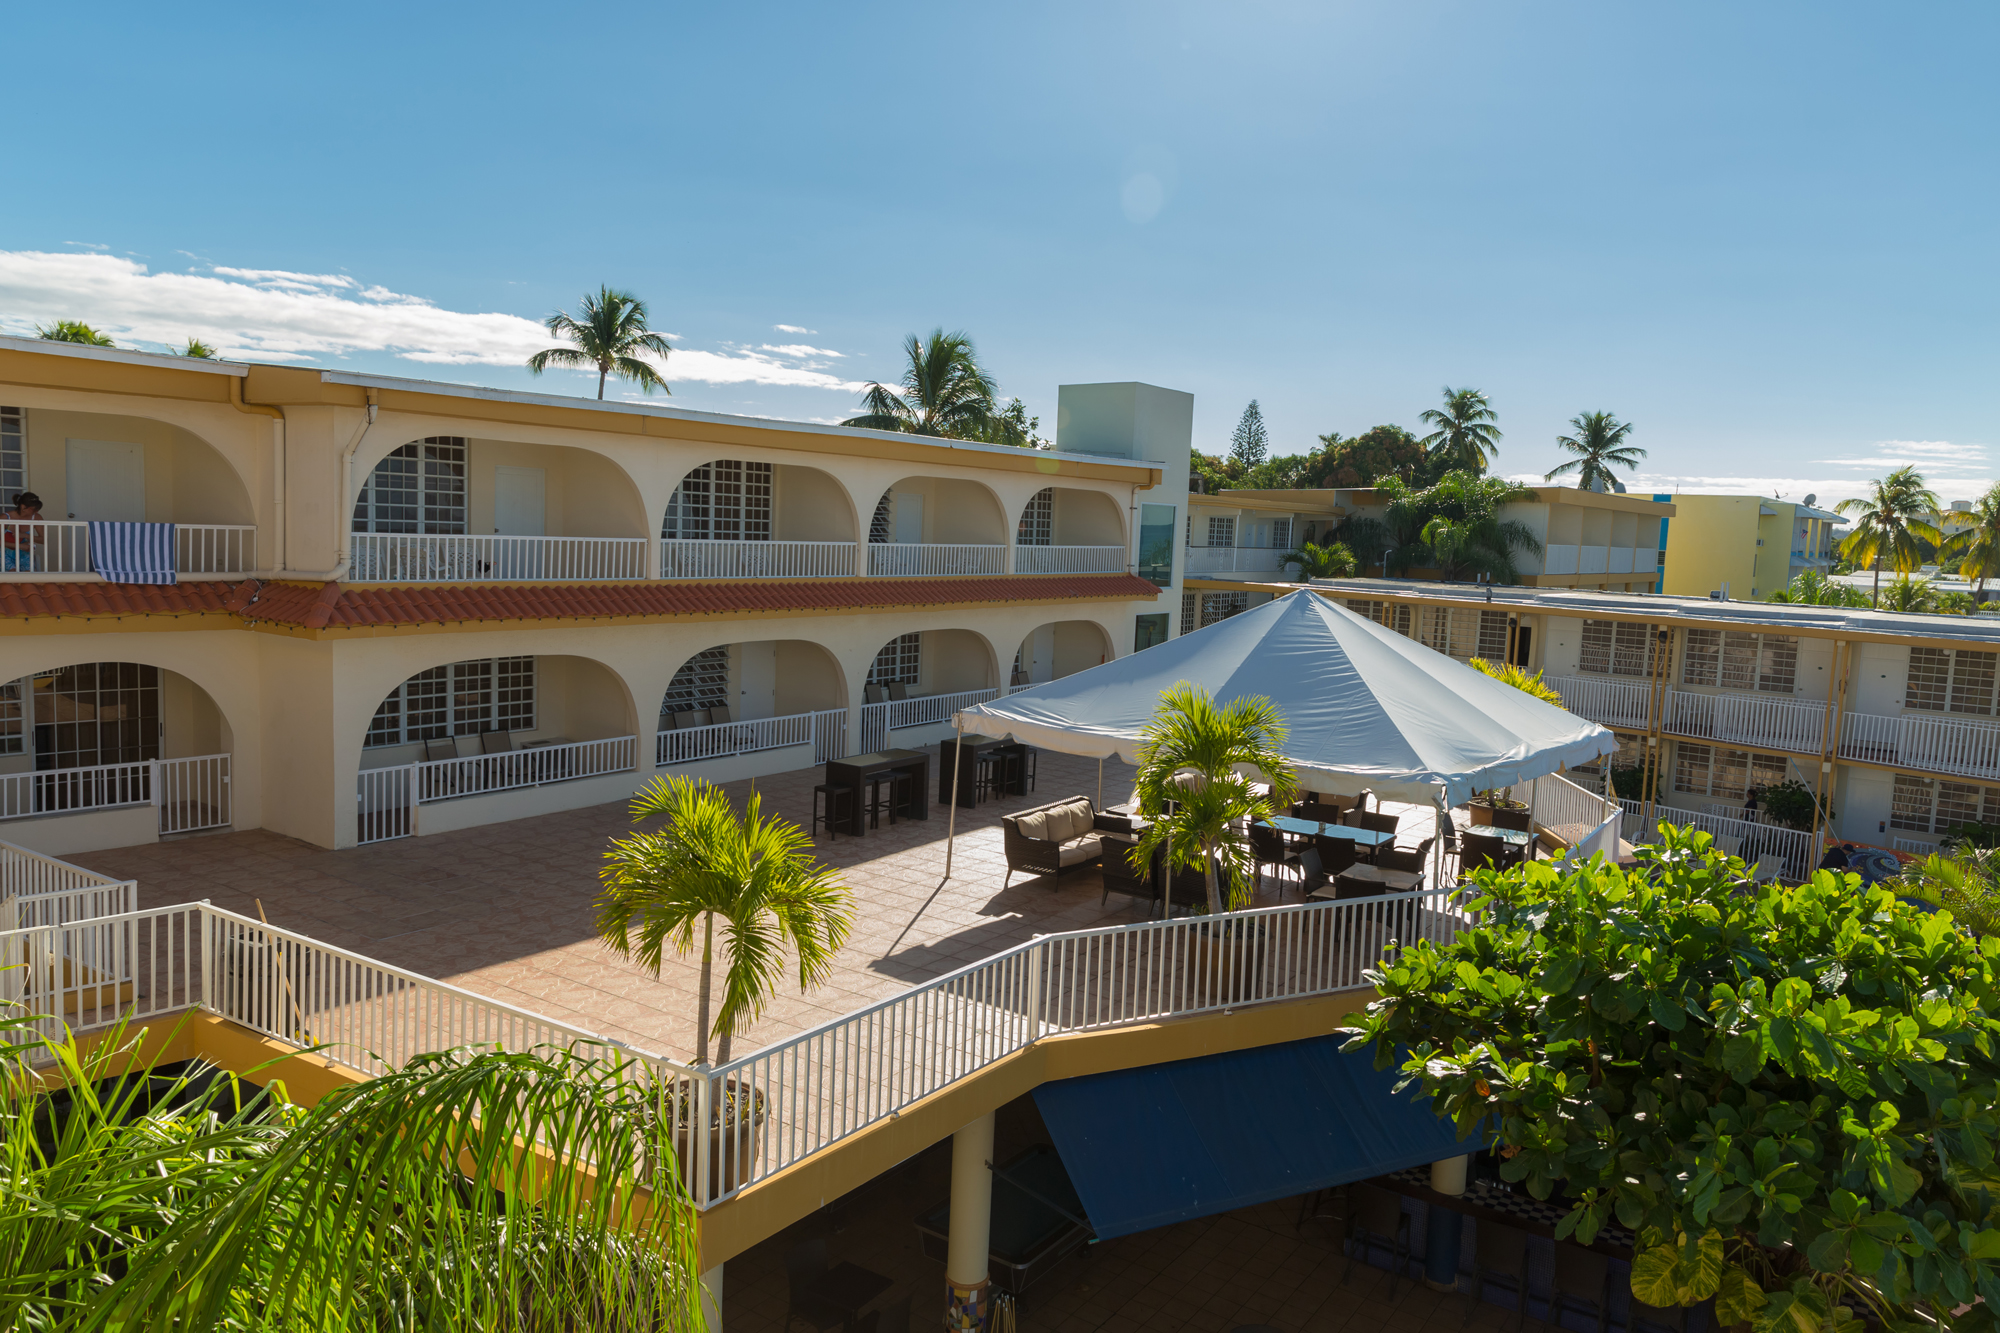 The longest running vacation experience in Rincón awaits you. A true getaway to be with the ones you love.